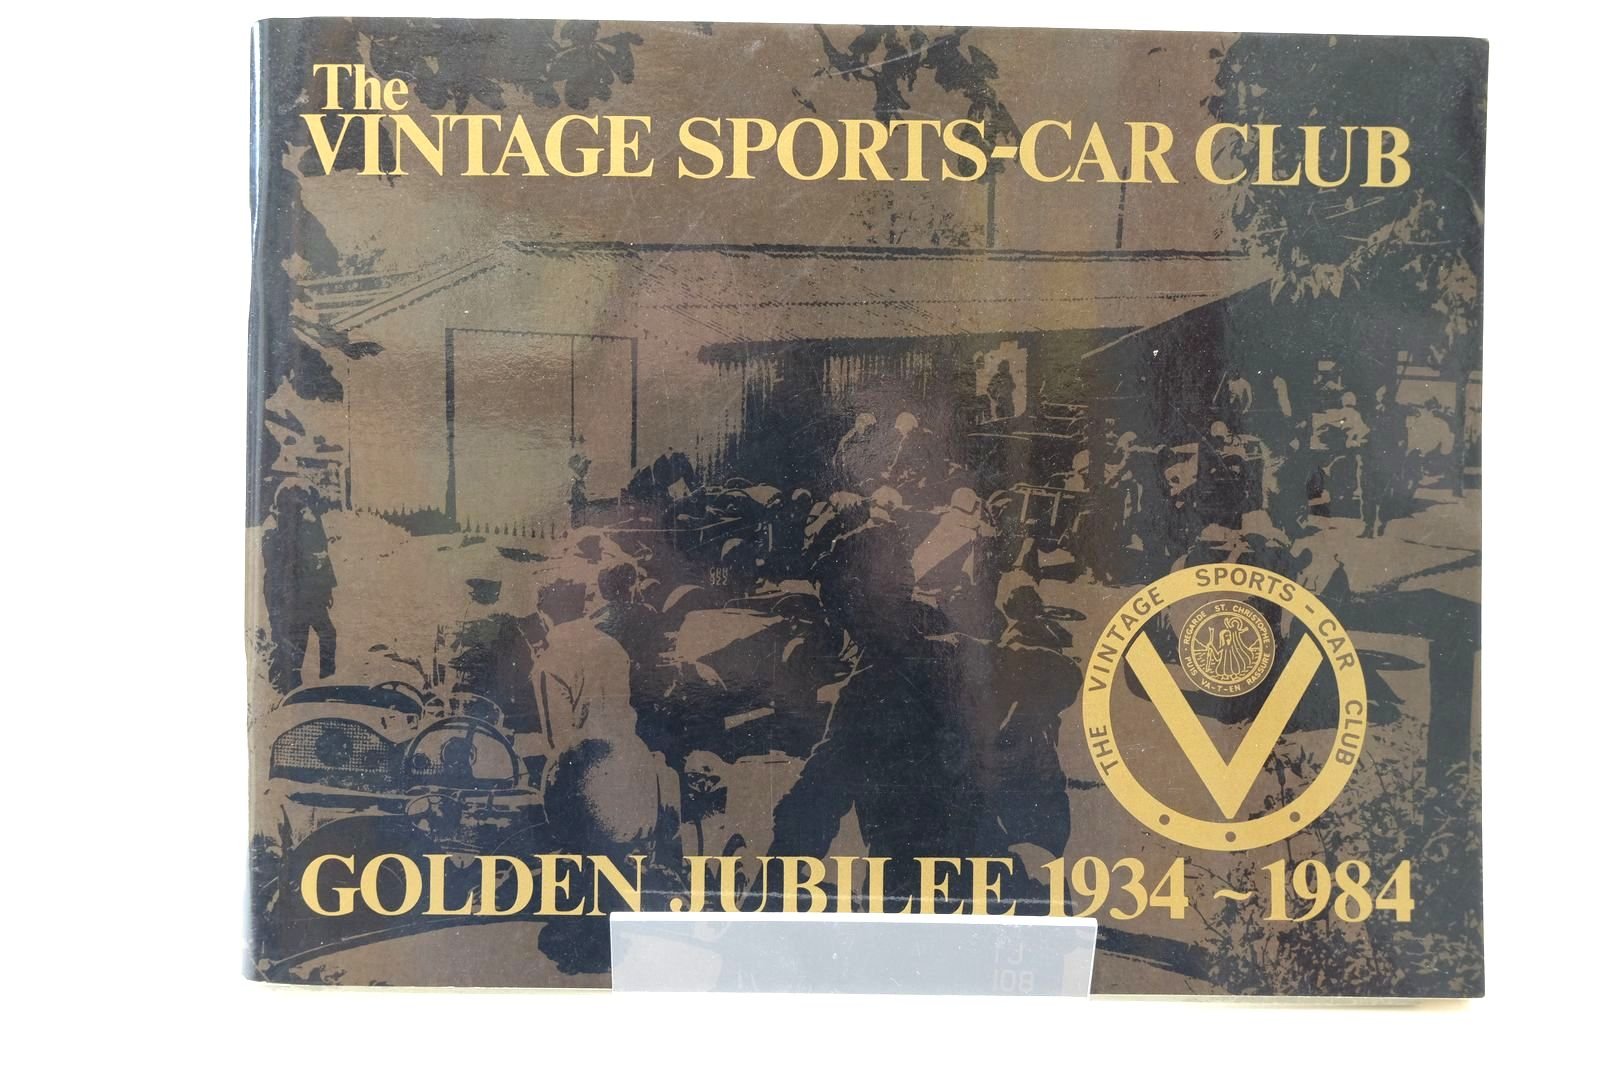 Photo of THE VINTAGE SPORTS-CAR CLUB GOLDEN JUBILEE 1934-1984 written by Hull, Peter published by Vintage Sports-Car Club Limited (STOCK CODE: 2132264)  for sale by Stella & Rose's Books